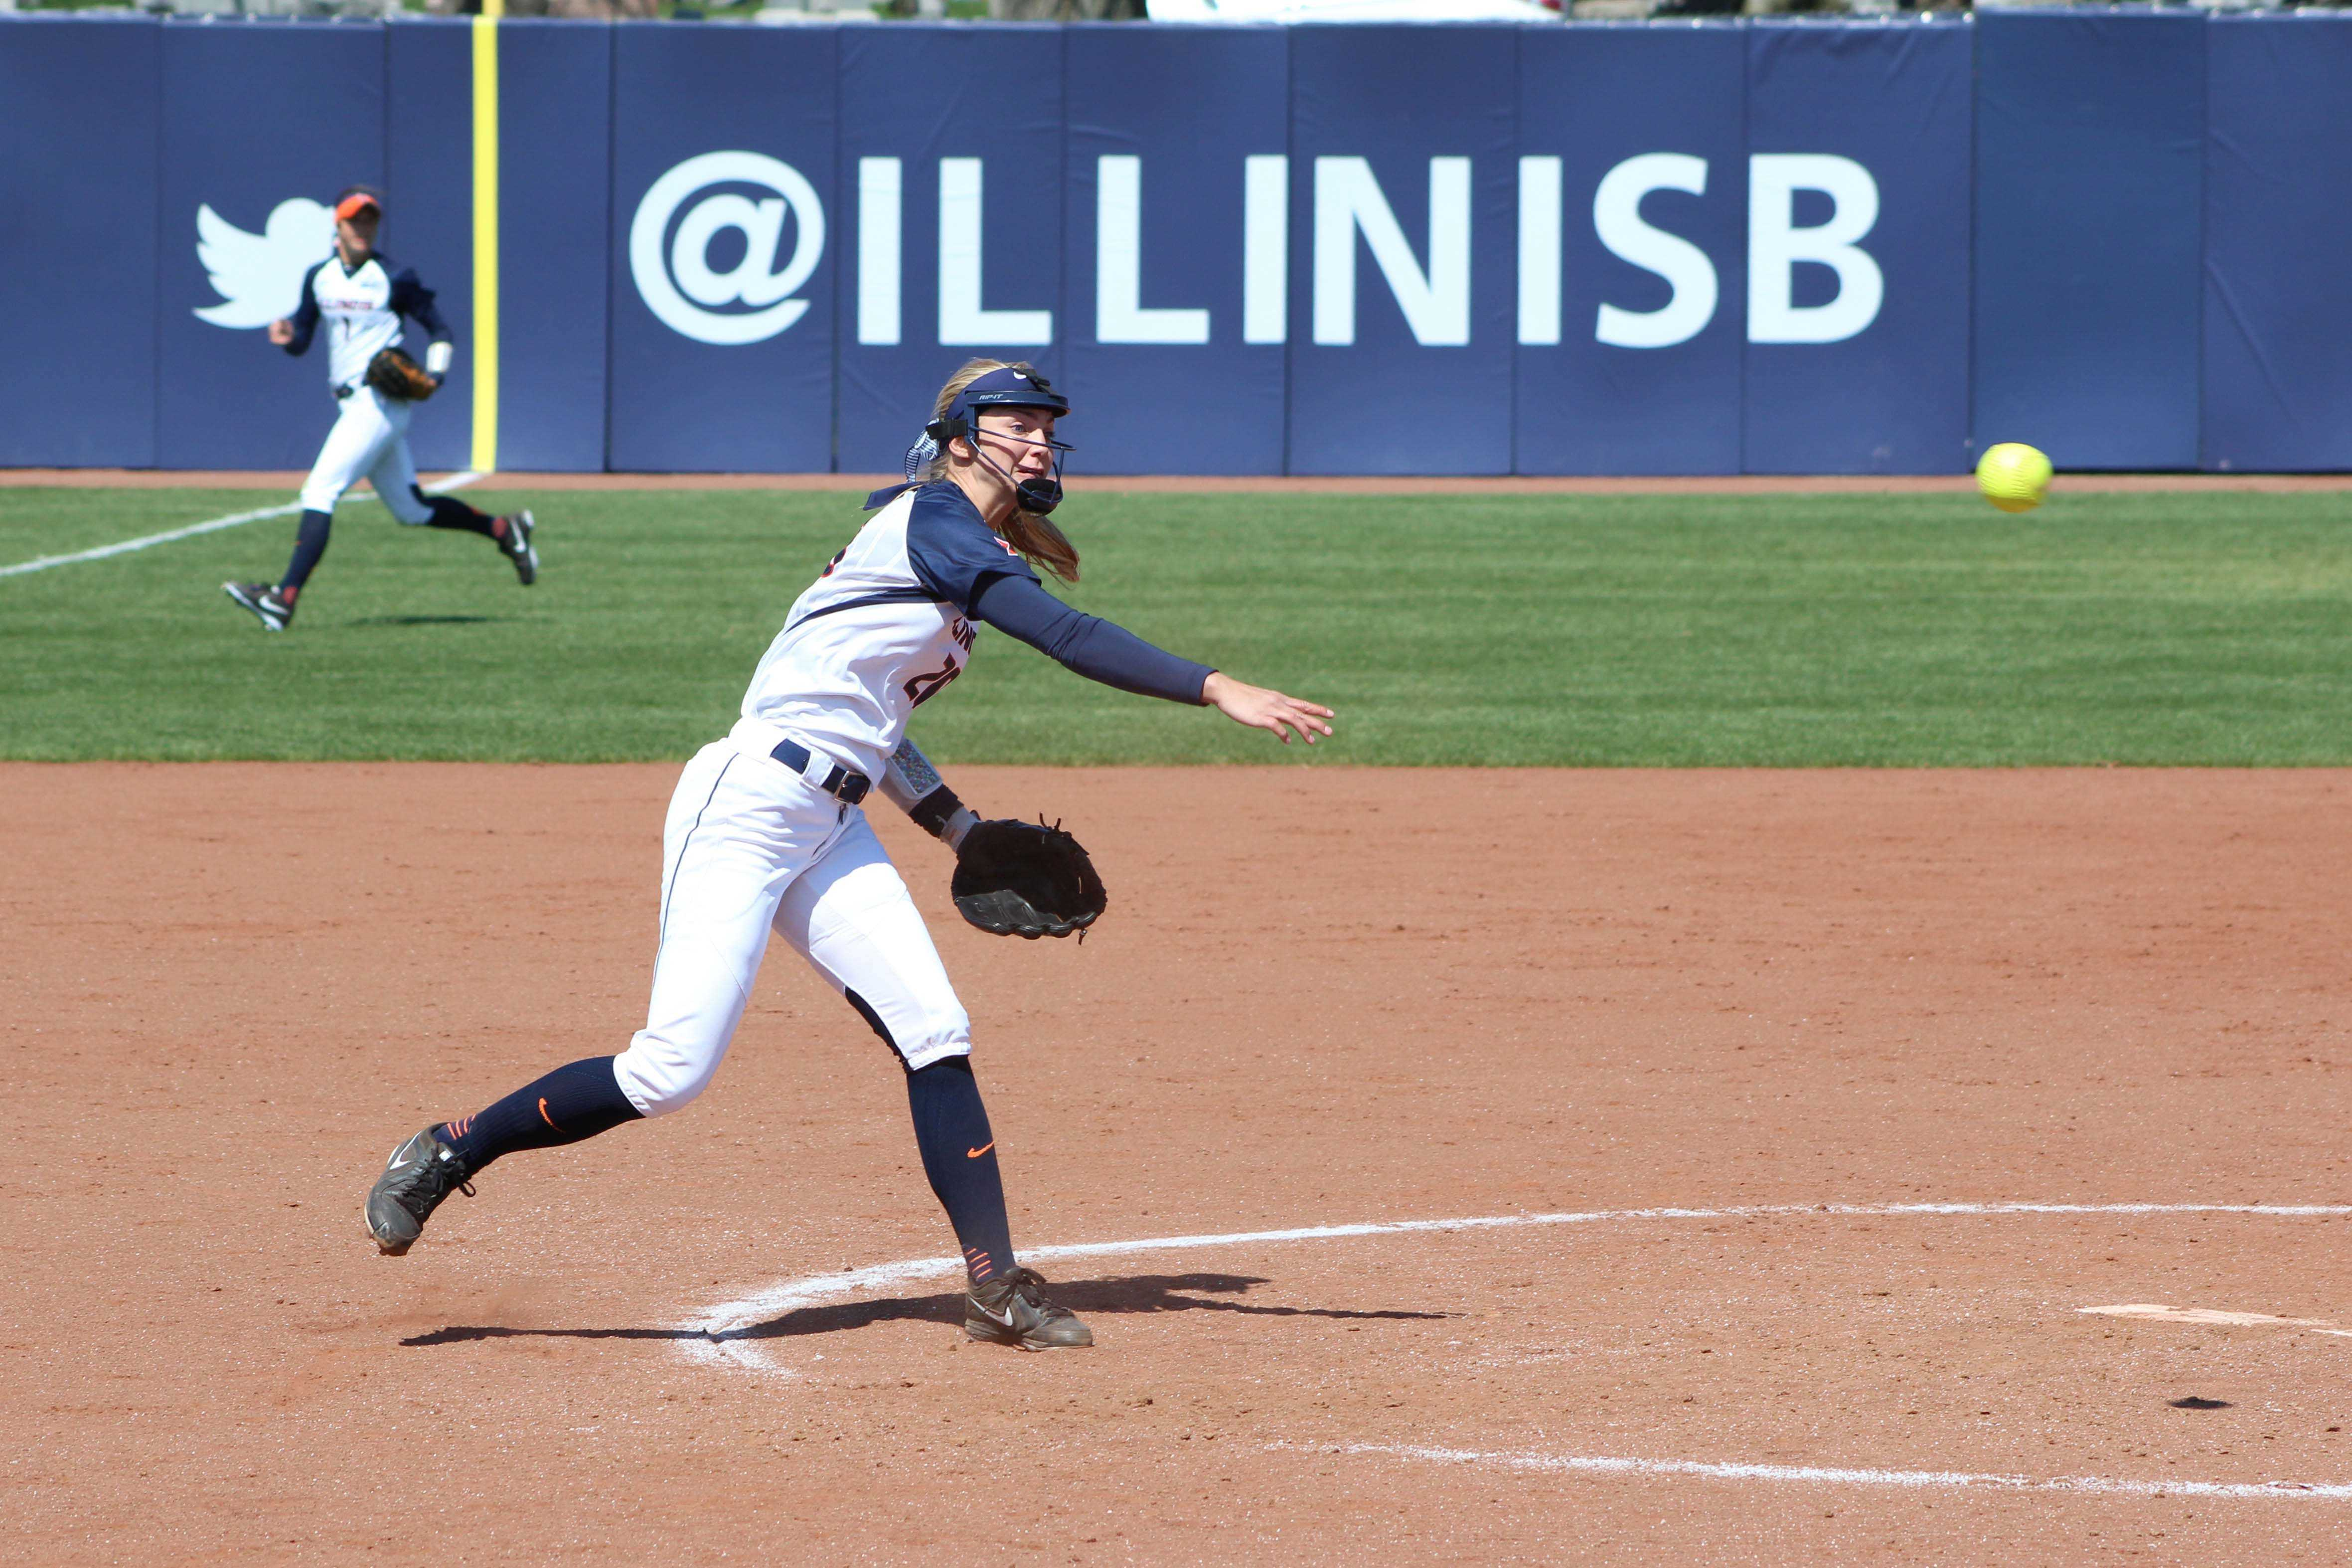 Illinois' Breanna Wonderly delivers the pitch against Nebraska at Eichelberger Field on April 2 In this year's I-75 Challenge, the senior started off the weekend pulling out a five-inning shutout against Georgia State.